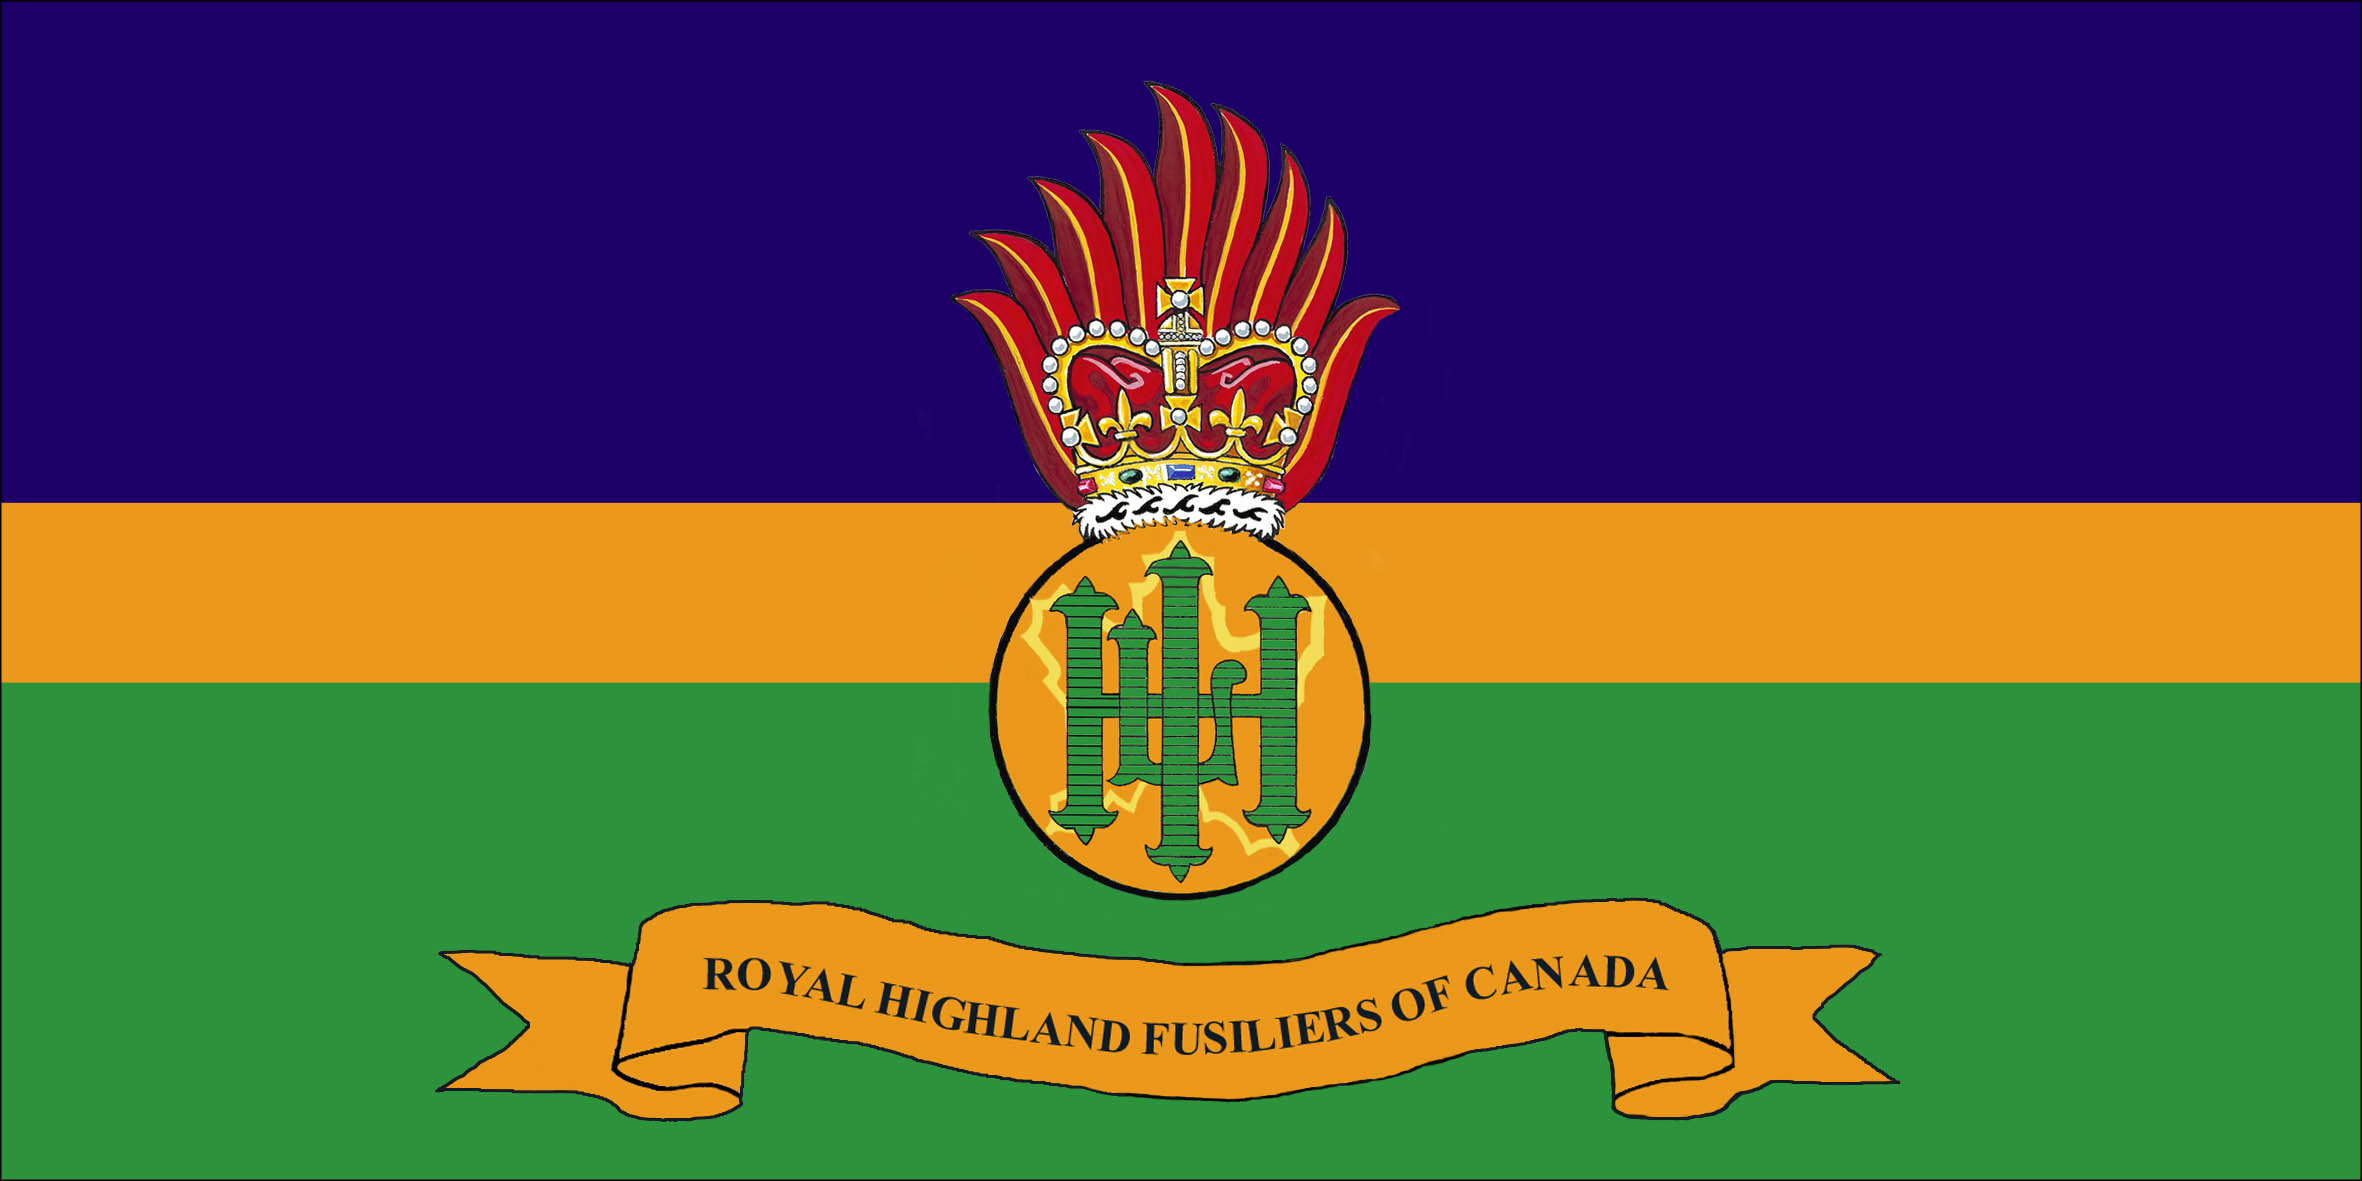 The Royal Highland Fusiliers of Canada